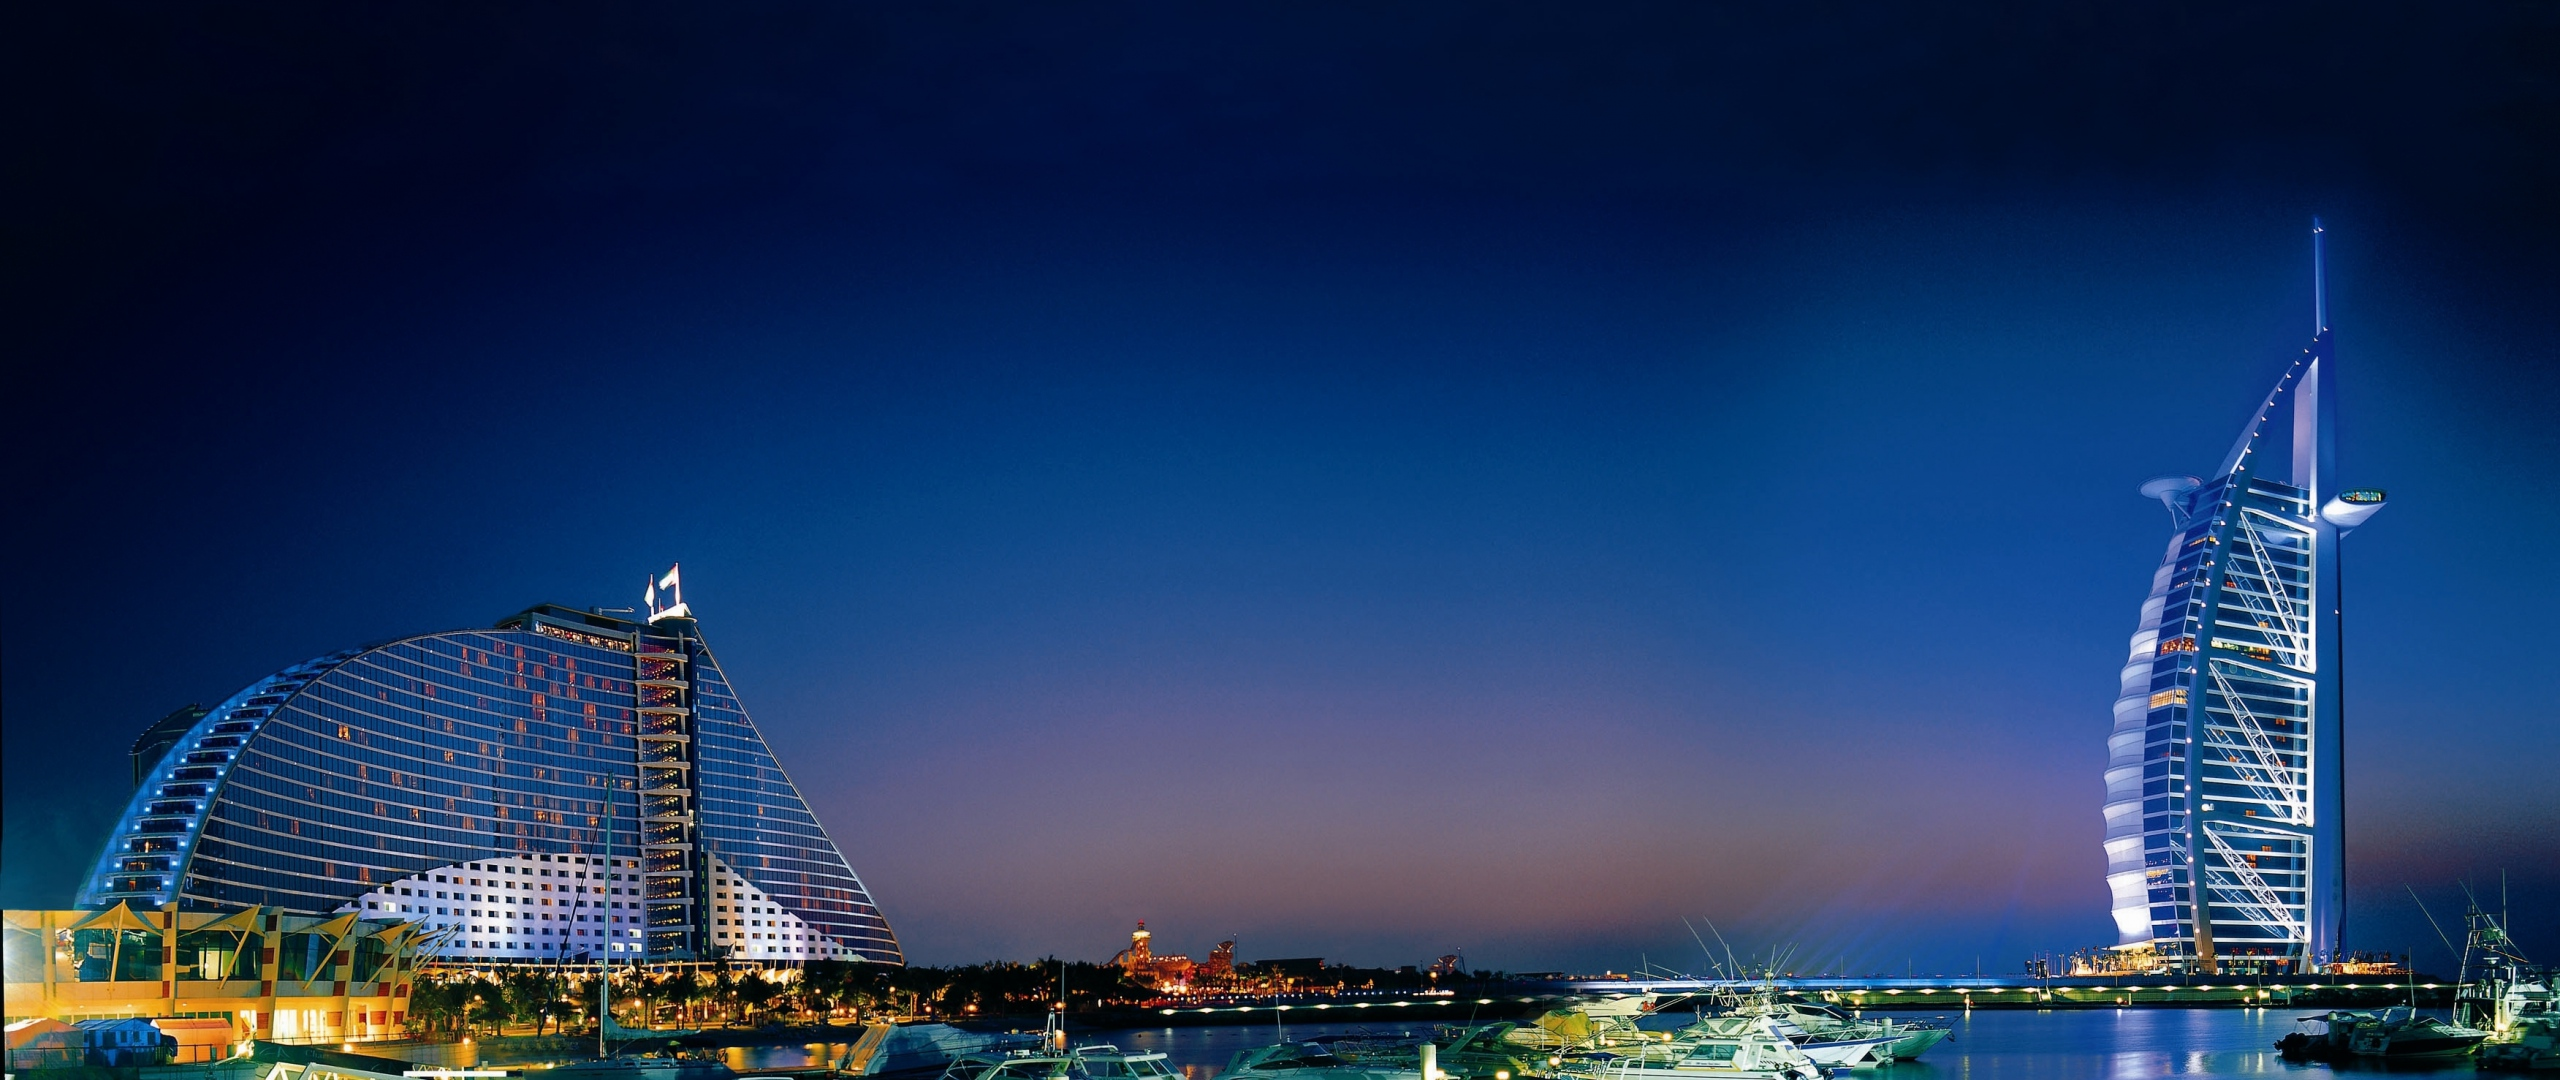 Burj-Al-Arab-Dubai-HD-desktop-Widescreen-High-wallpaper-wpc9003243